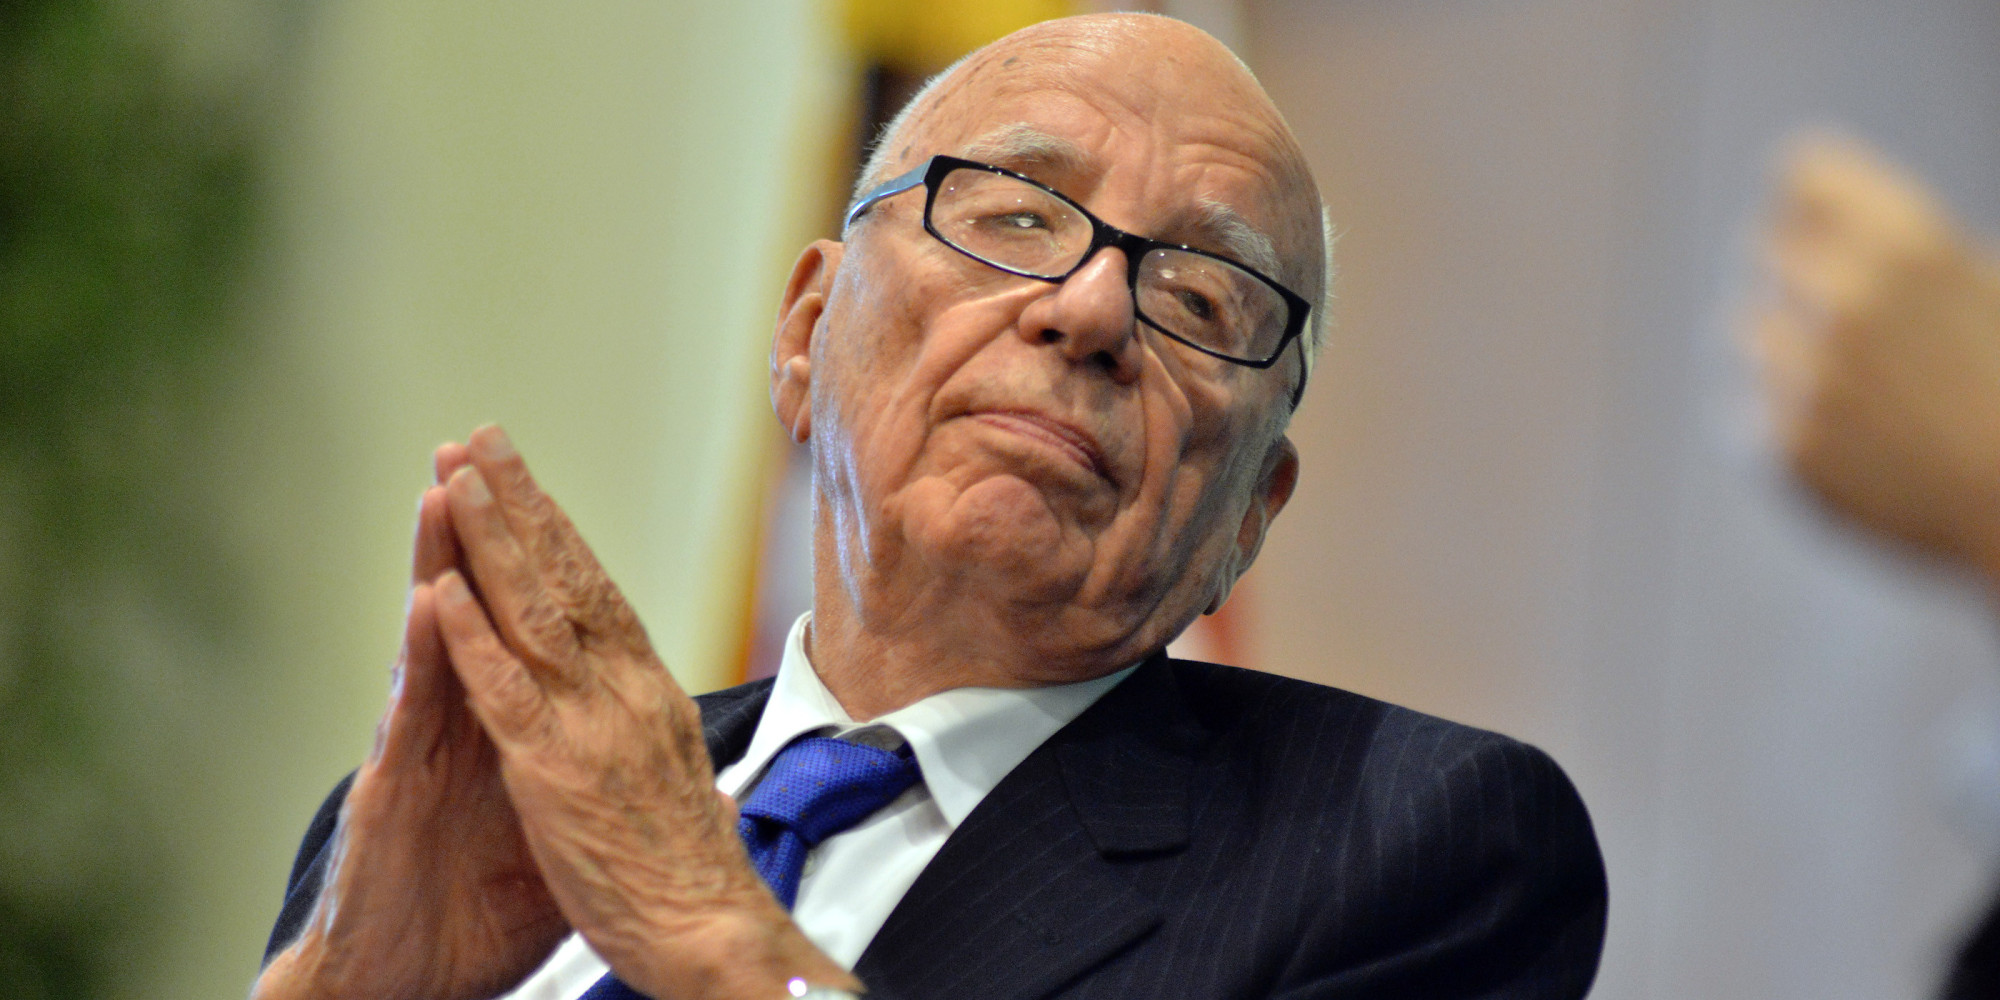 News Corporation CEO Rupert Murdoch listens during a forum on The Economics and Politics of Immigration where Murdoch and New York Mayor Michael Bloomberg spoke to a business organization In Boston, Tuesday, Aug. 14, 2012. (AP Photo/Josh Reynolds)